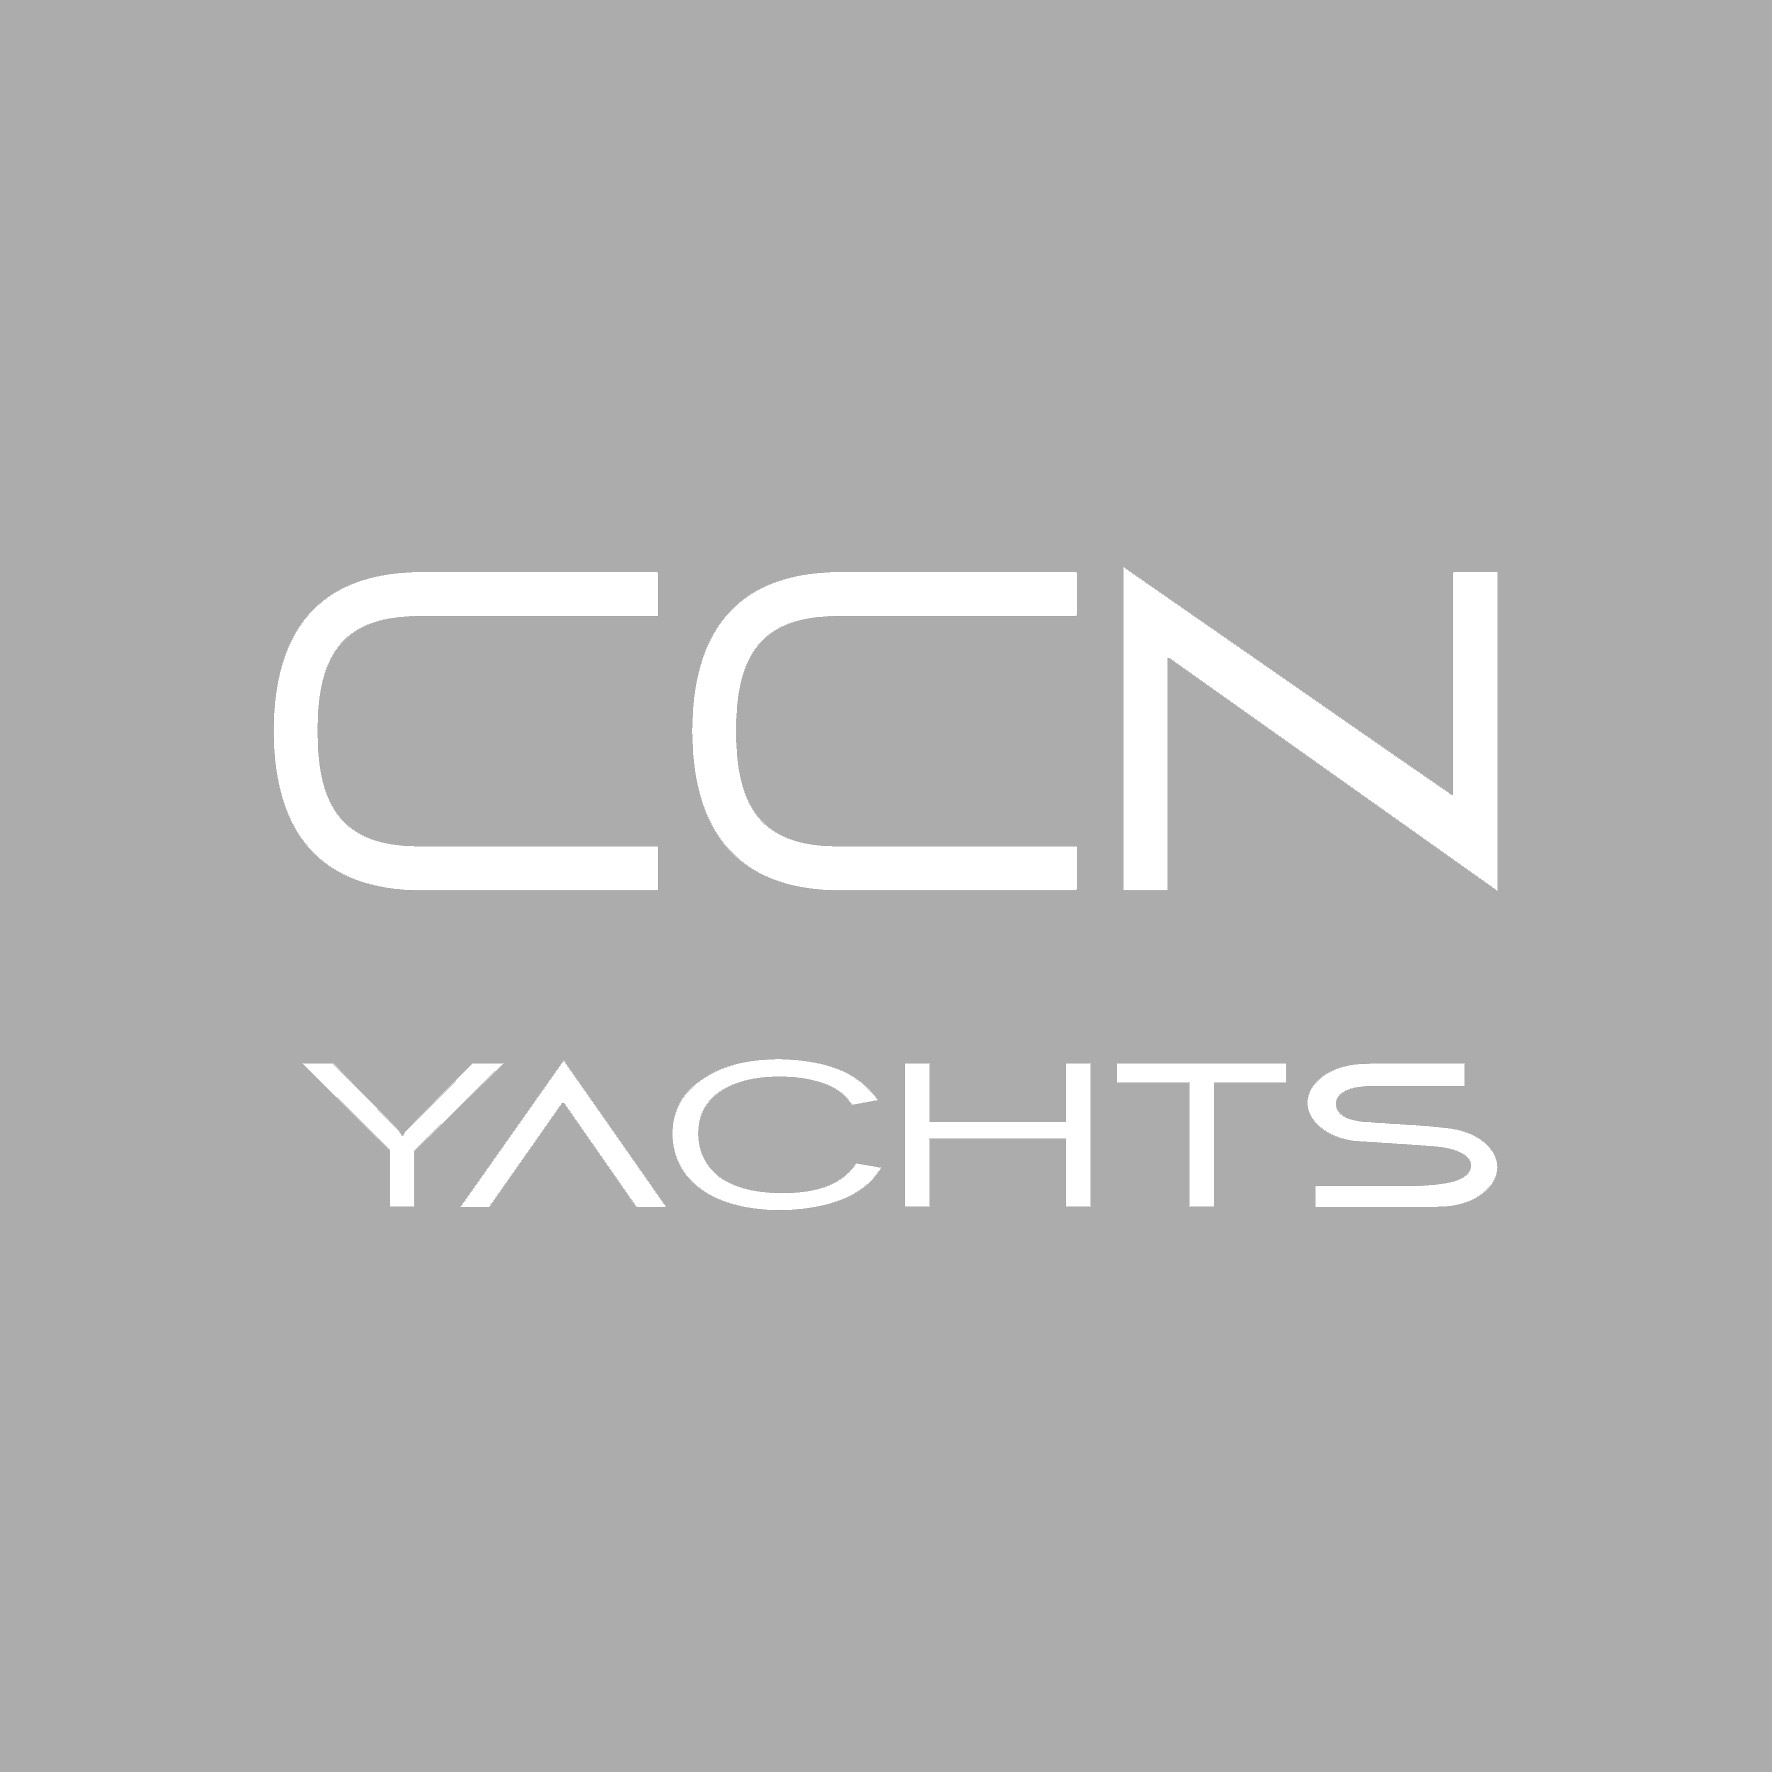 ccn-yachts-logo-about-us